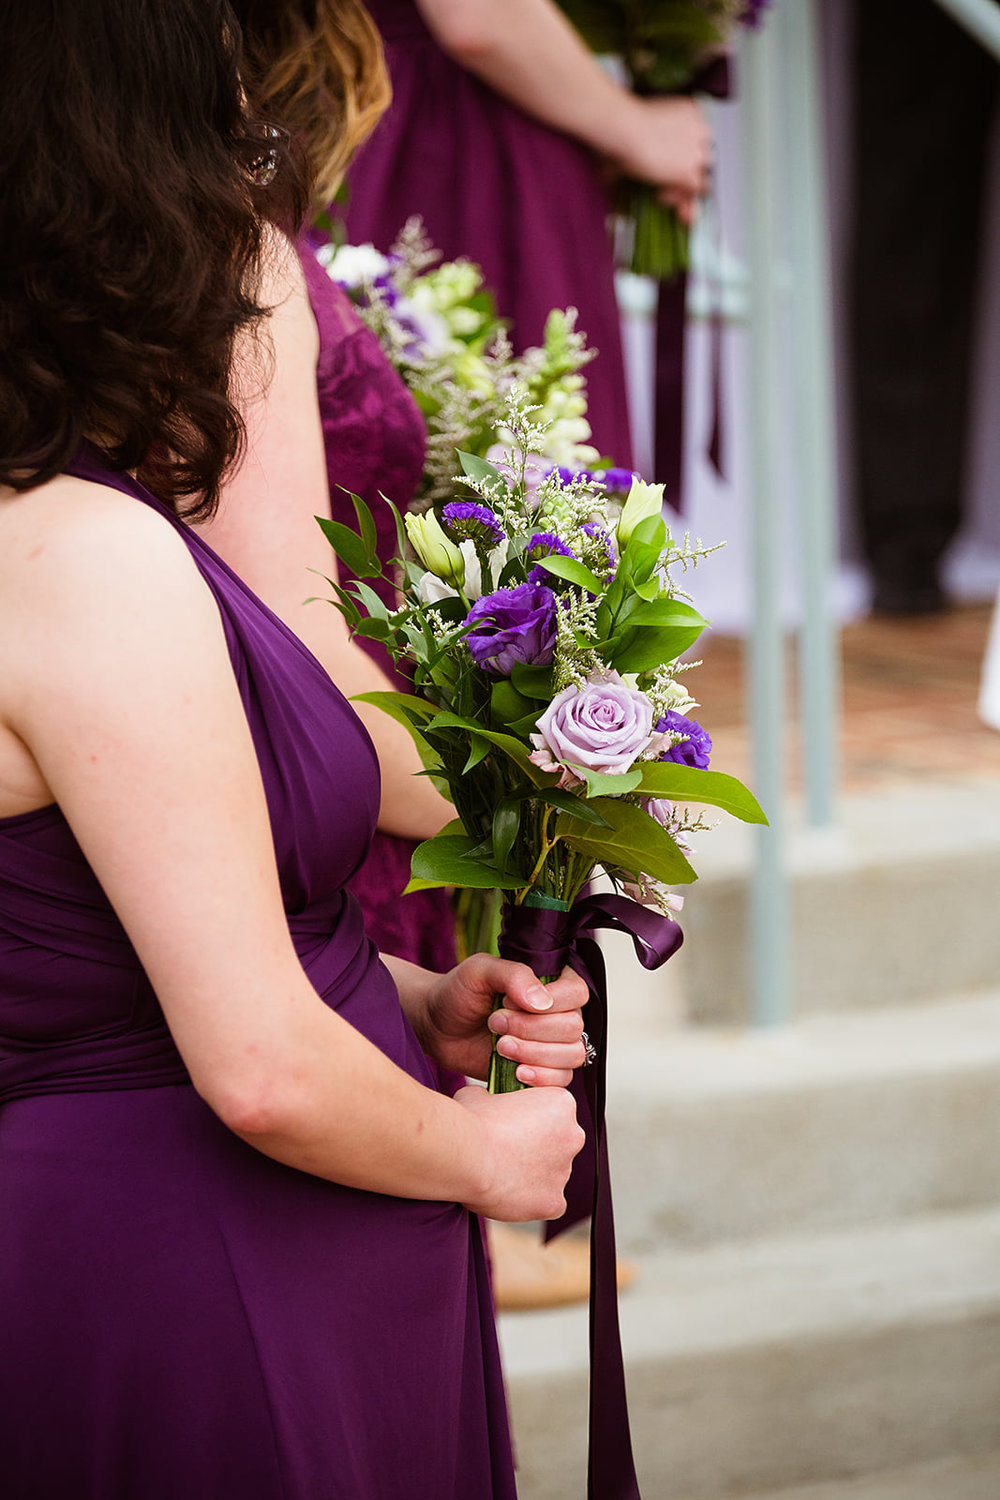 Blacano Wedding - Ceremony-25.jpg